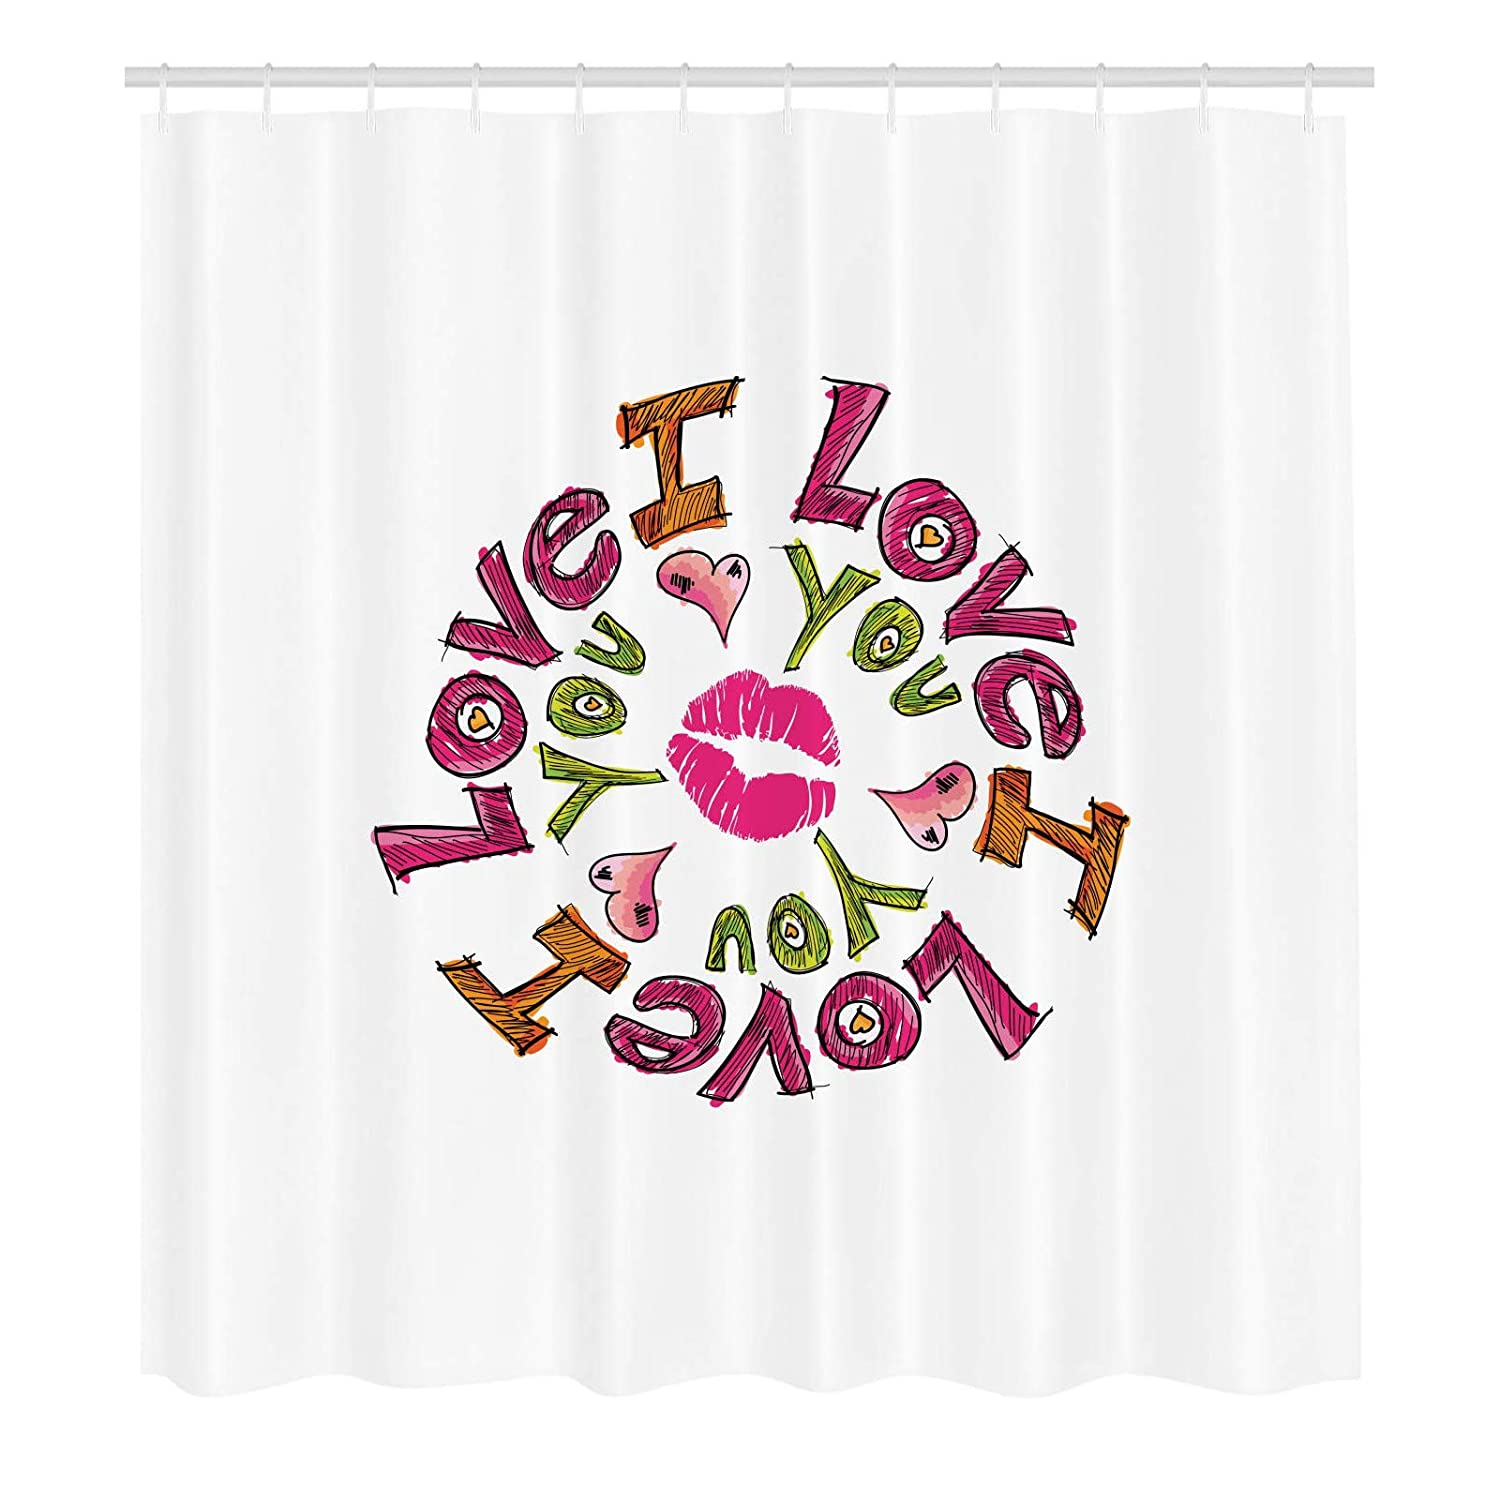 Love You Shower Curtain Comical Sketch Of Lettering In Circular Design With Valentines Hearts A Smooch Polyester Fabric Waterproof Bathroom Decor